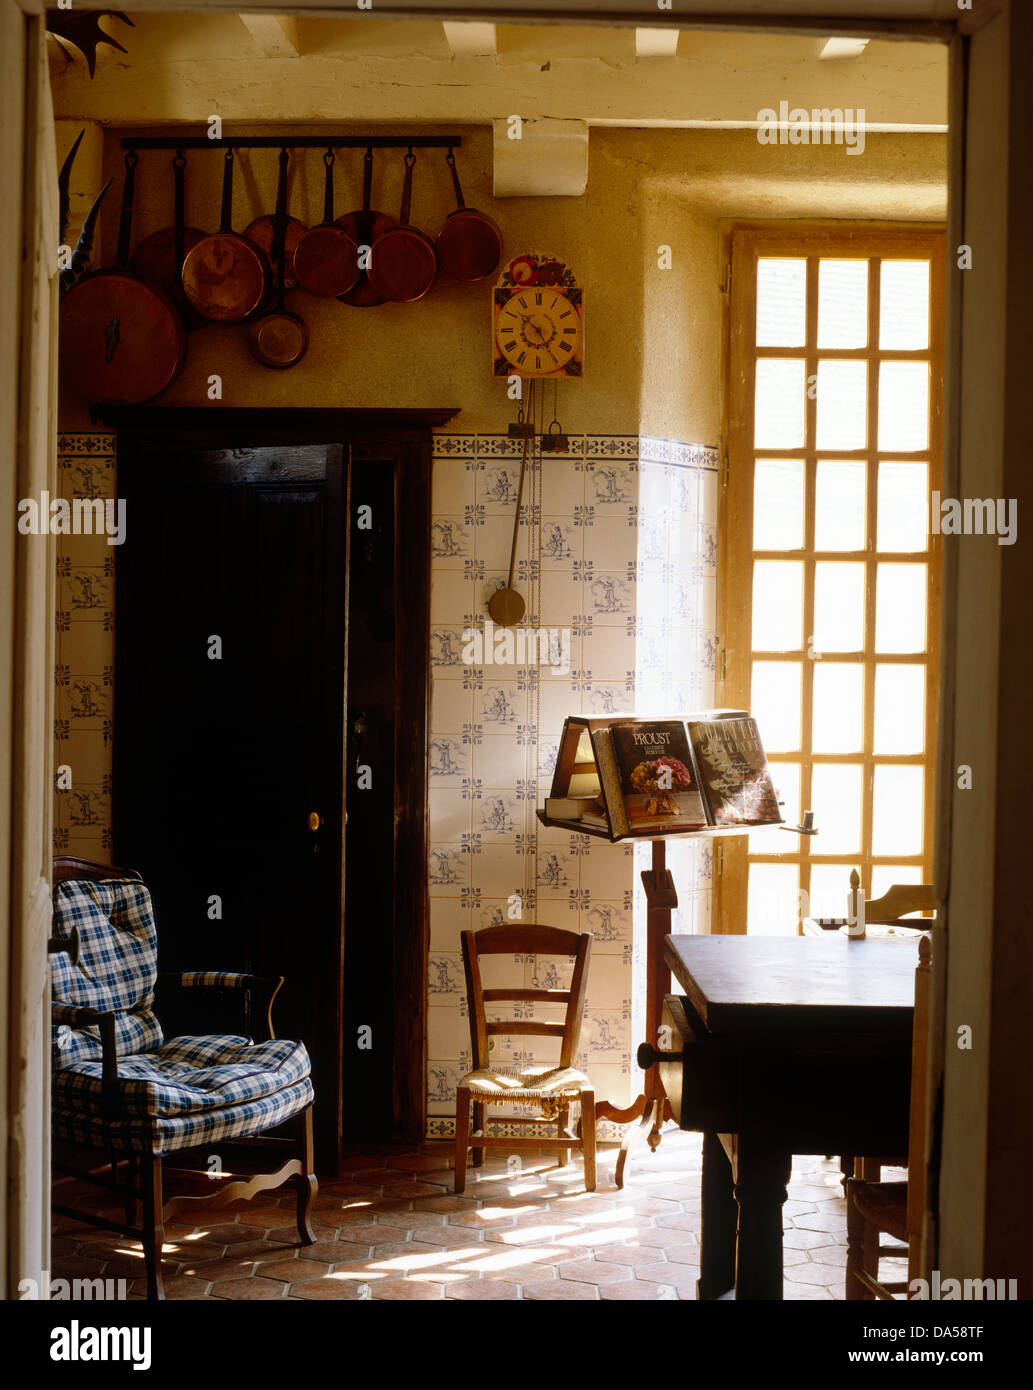 View Through Open Doorway To English Country Dining Room With Blue+white  Tiled Wall And Chair With Blue Checked Cushions